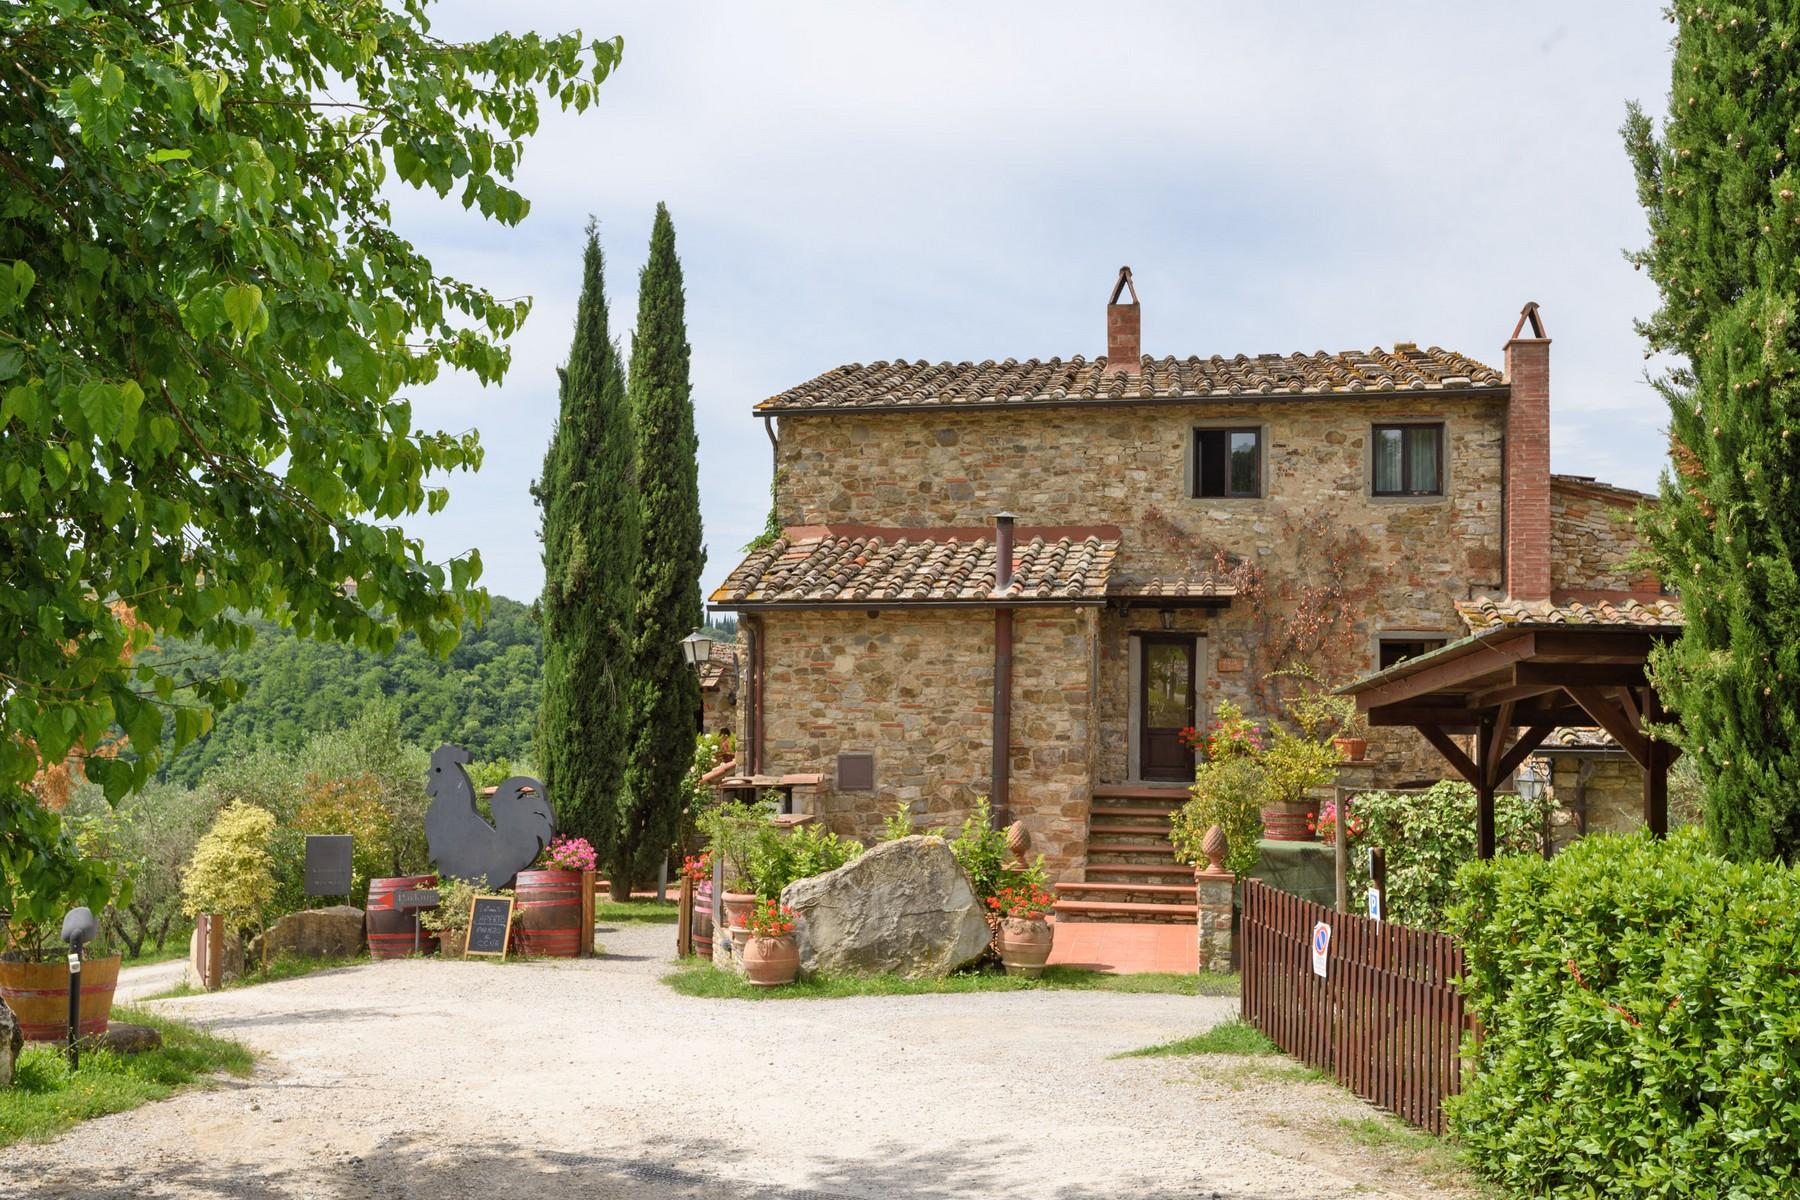 Ancient village in the heart of Chianti - 2